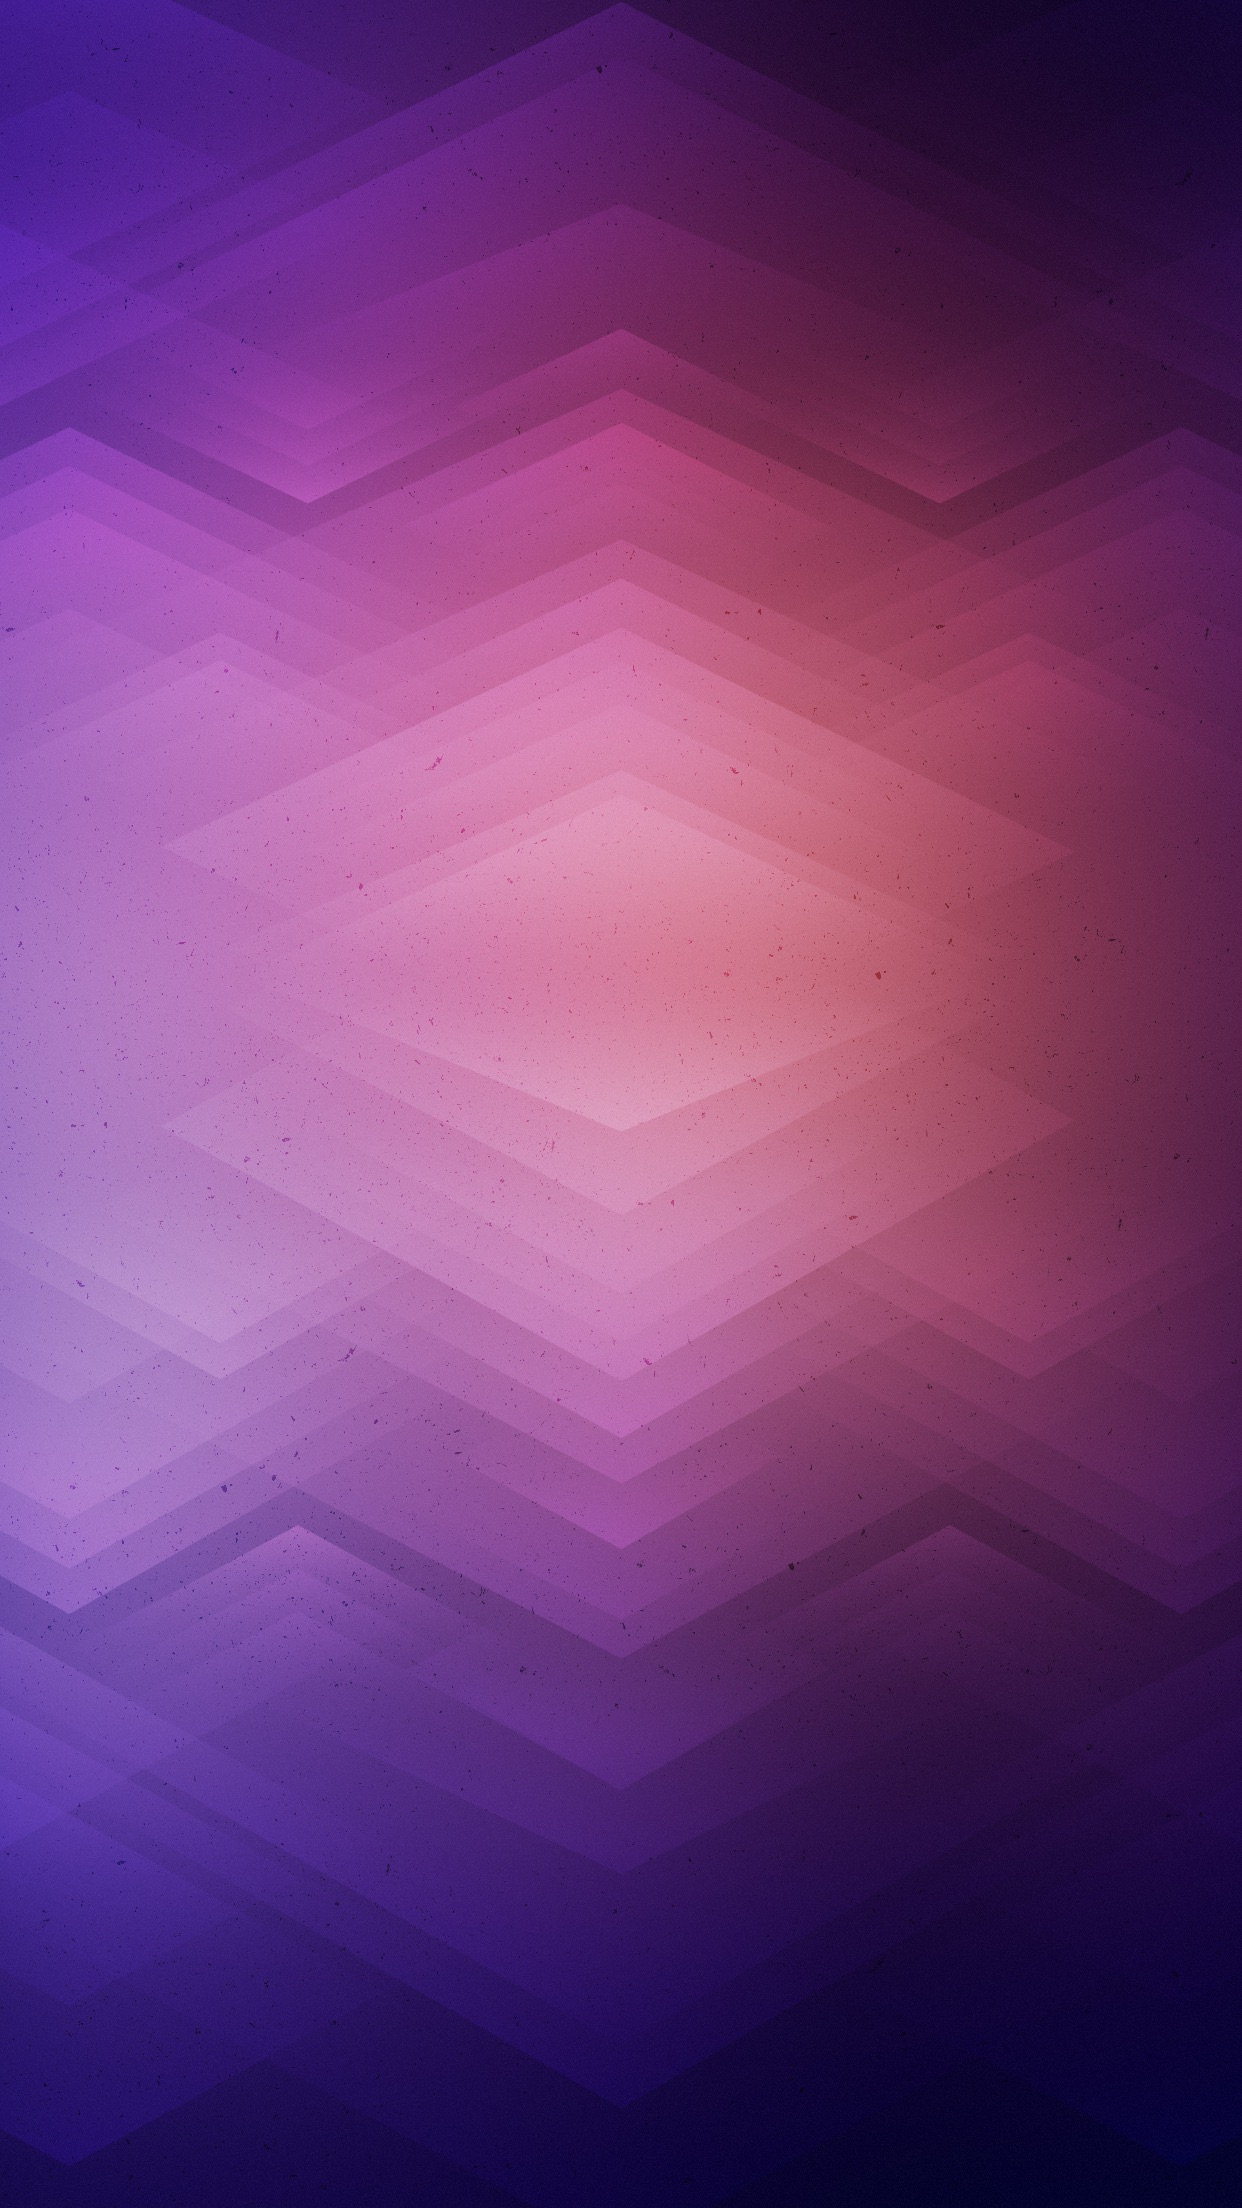 Notchless Wallpaper Iphone X Wallpapers Of The Week Colorful Abstract Vibes